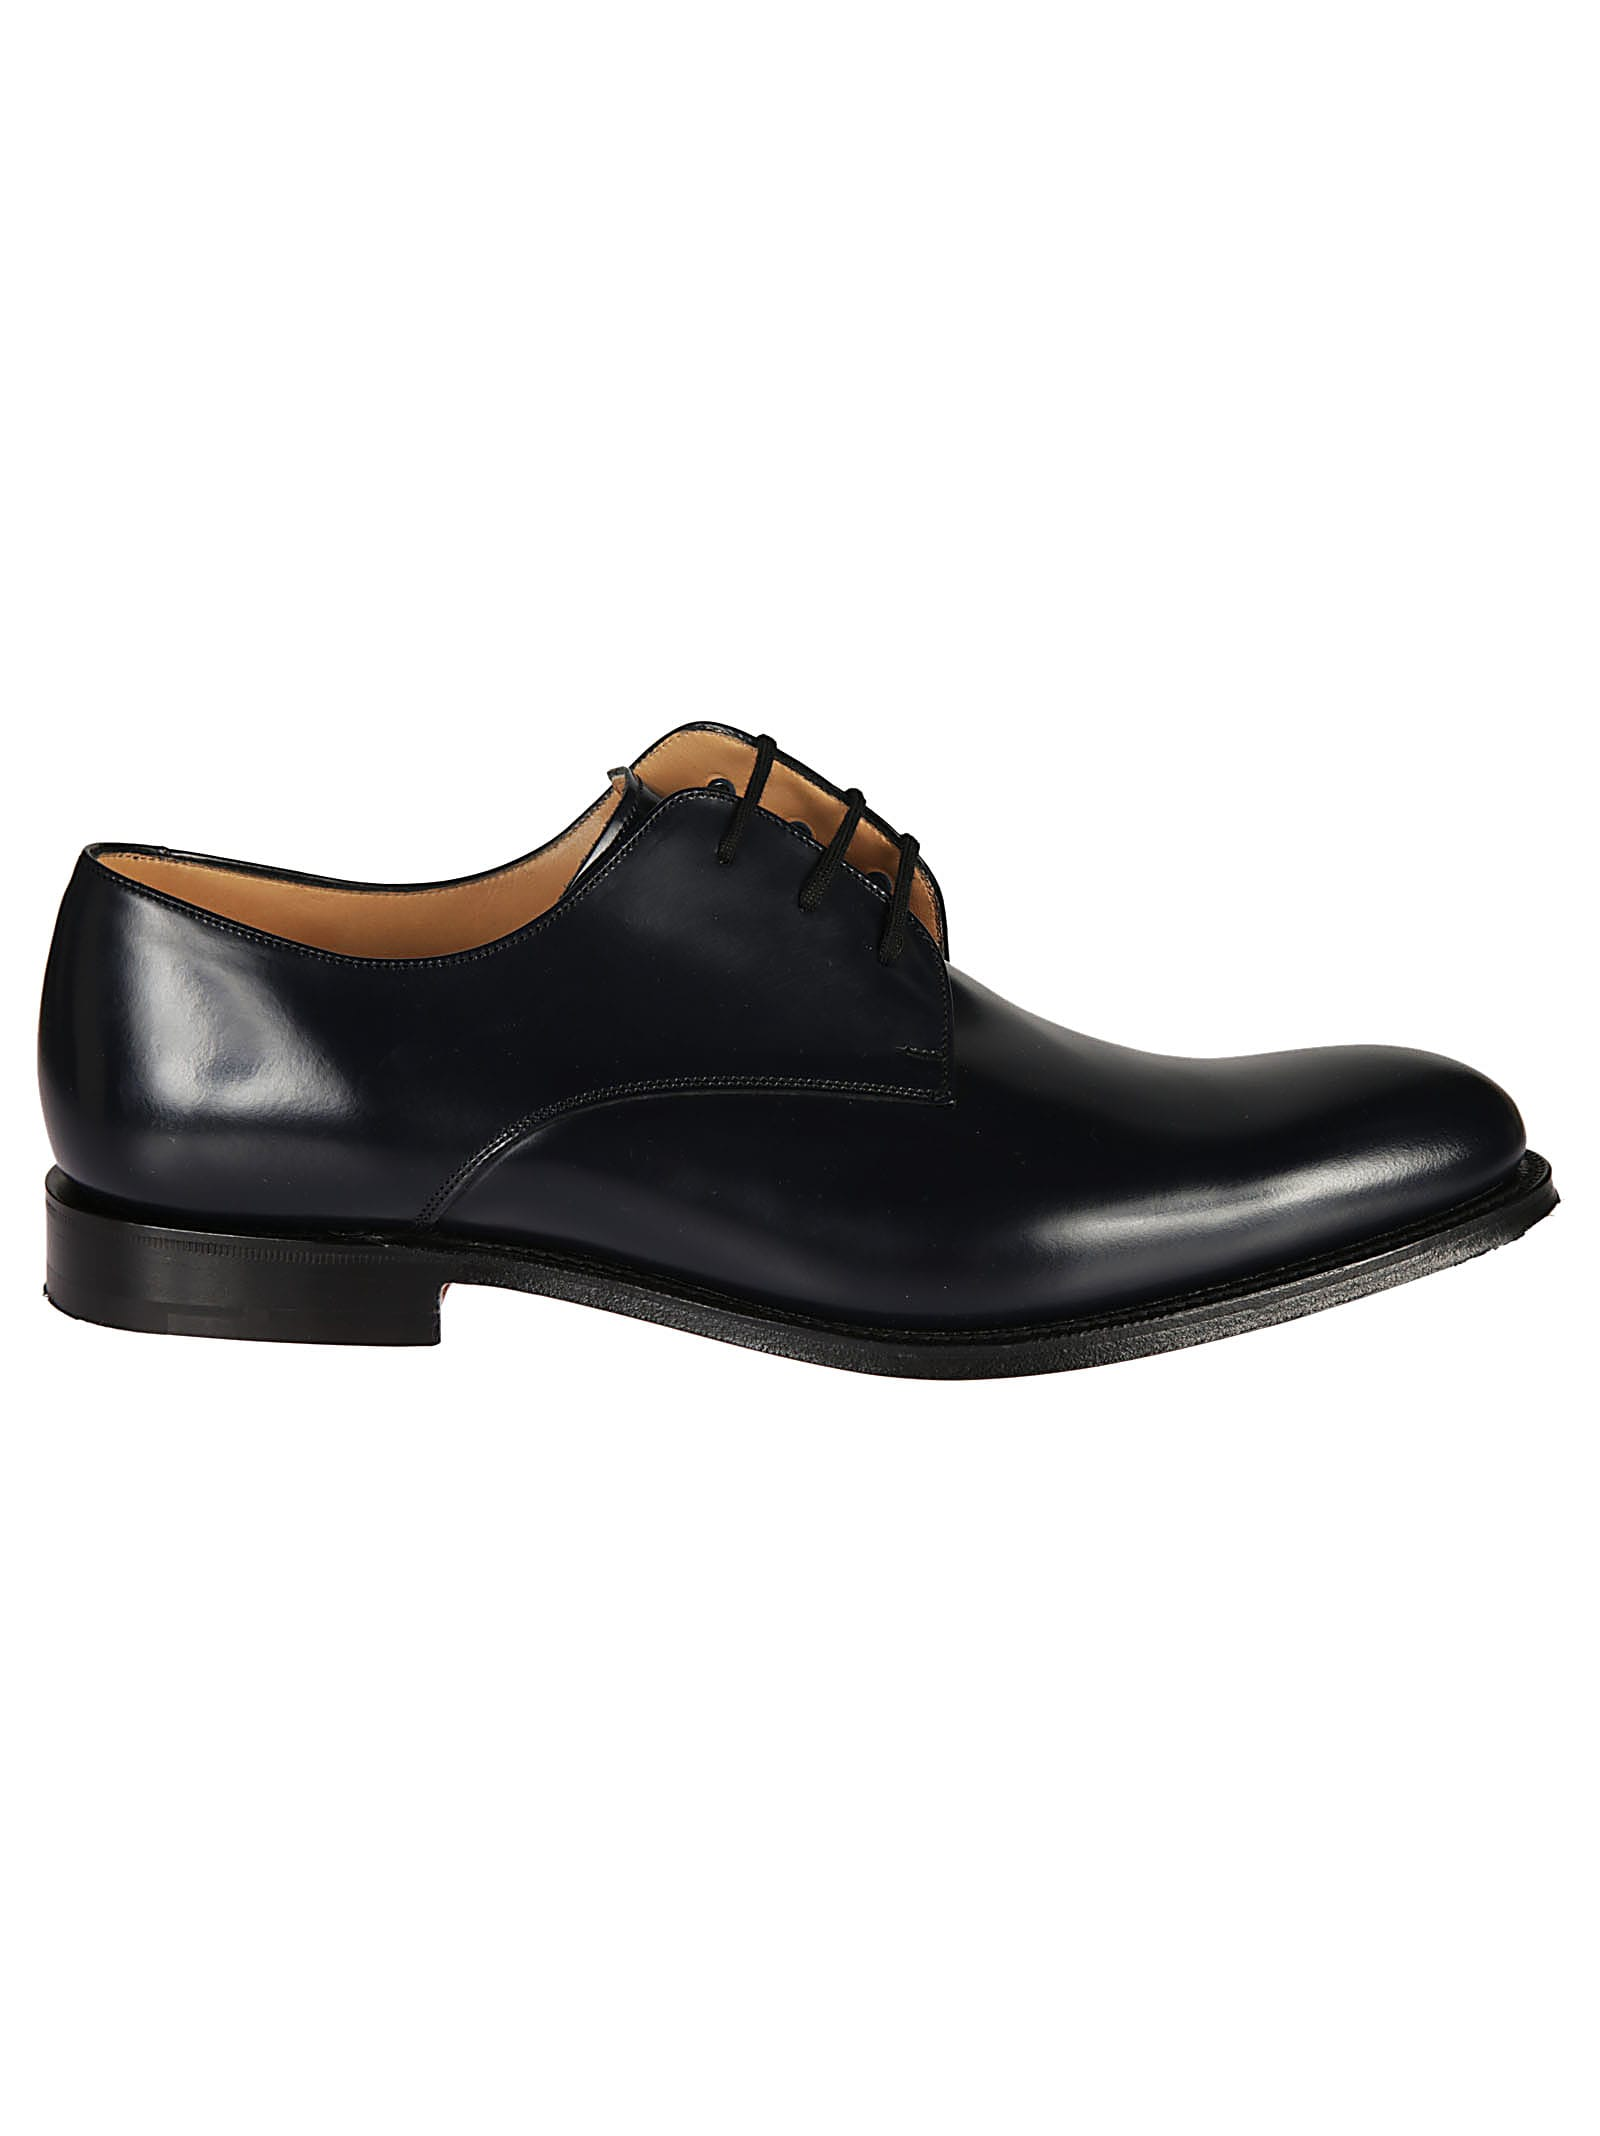 Churchs Classic Lace-up Shoes